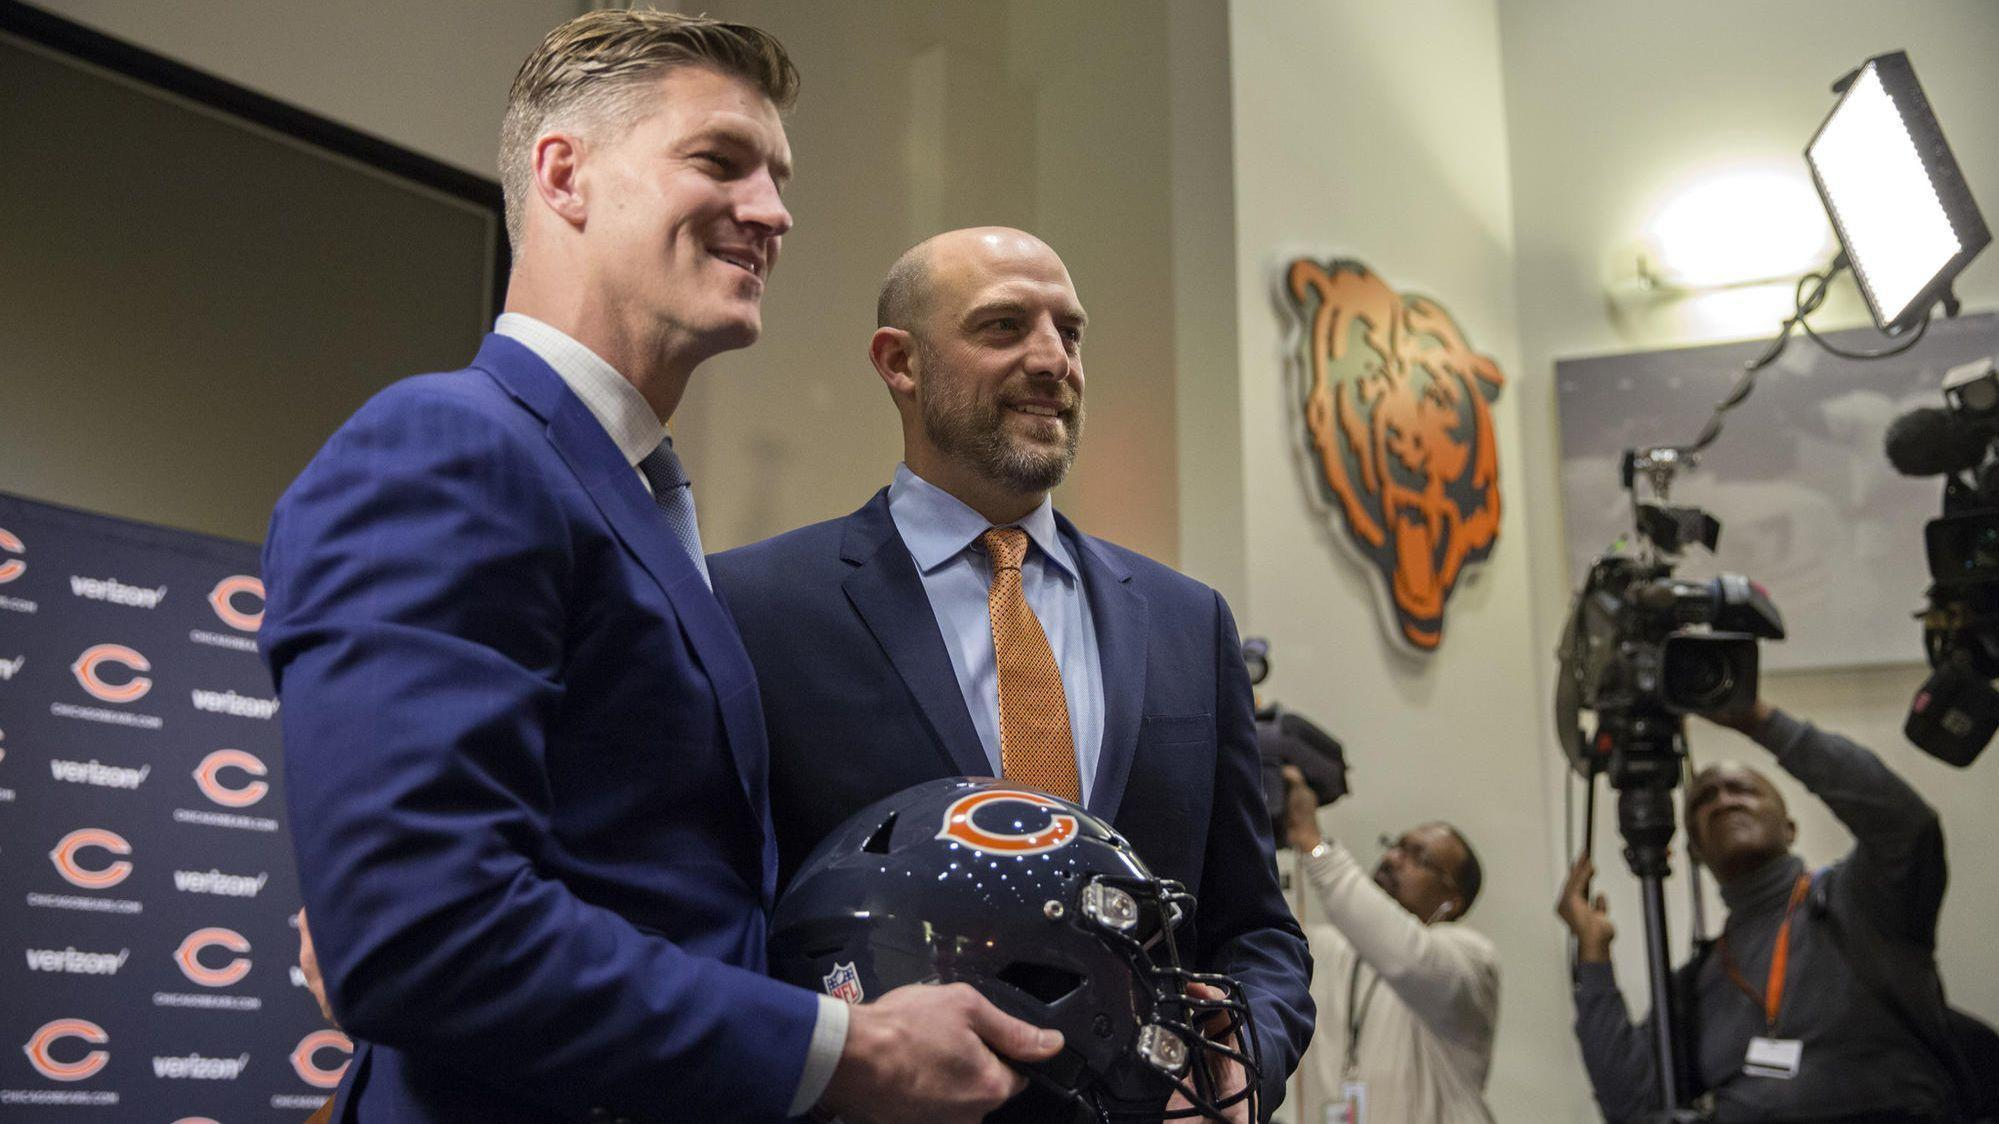 Ct-spt-bears-free-agency-next-moves-20180314